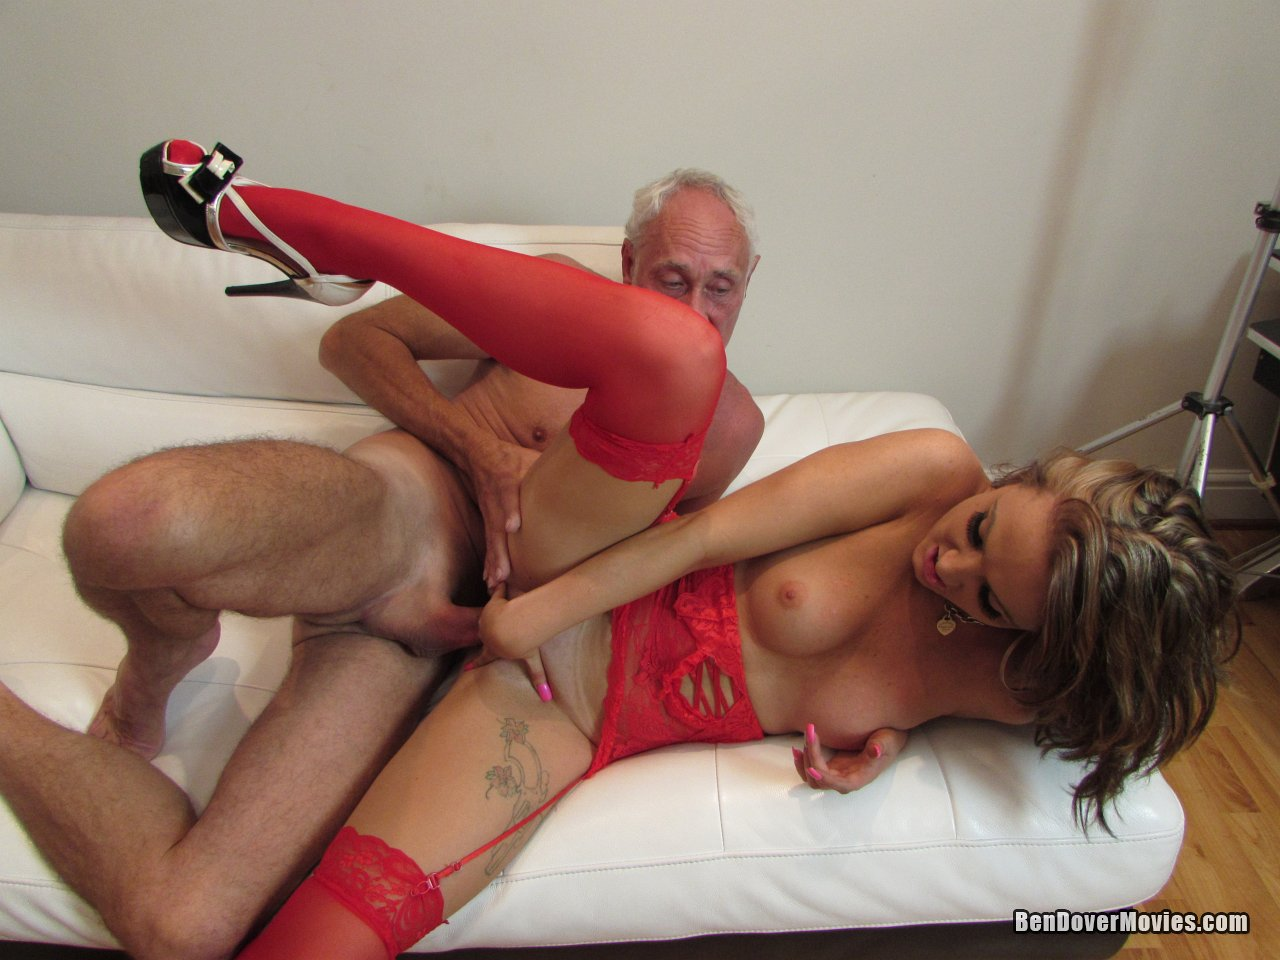 Jodie Lee fucked in the ass